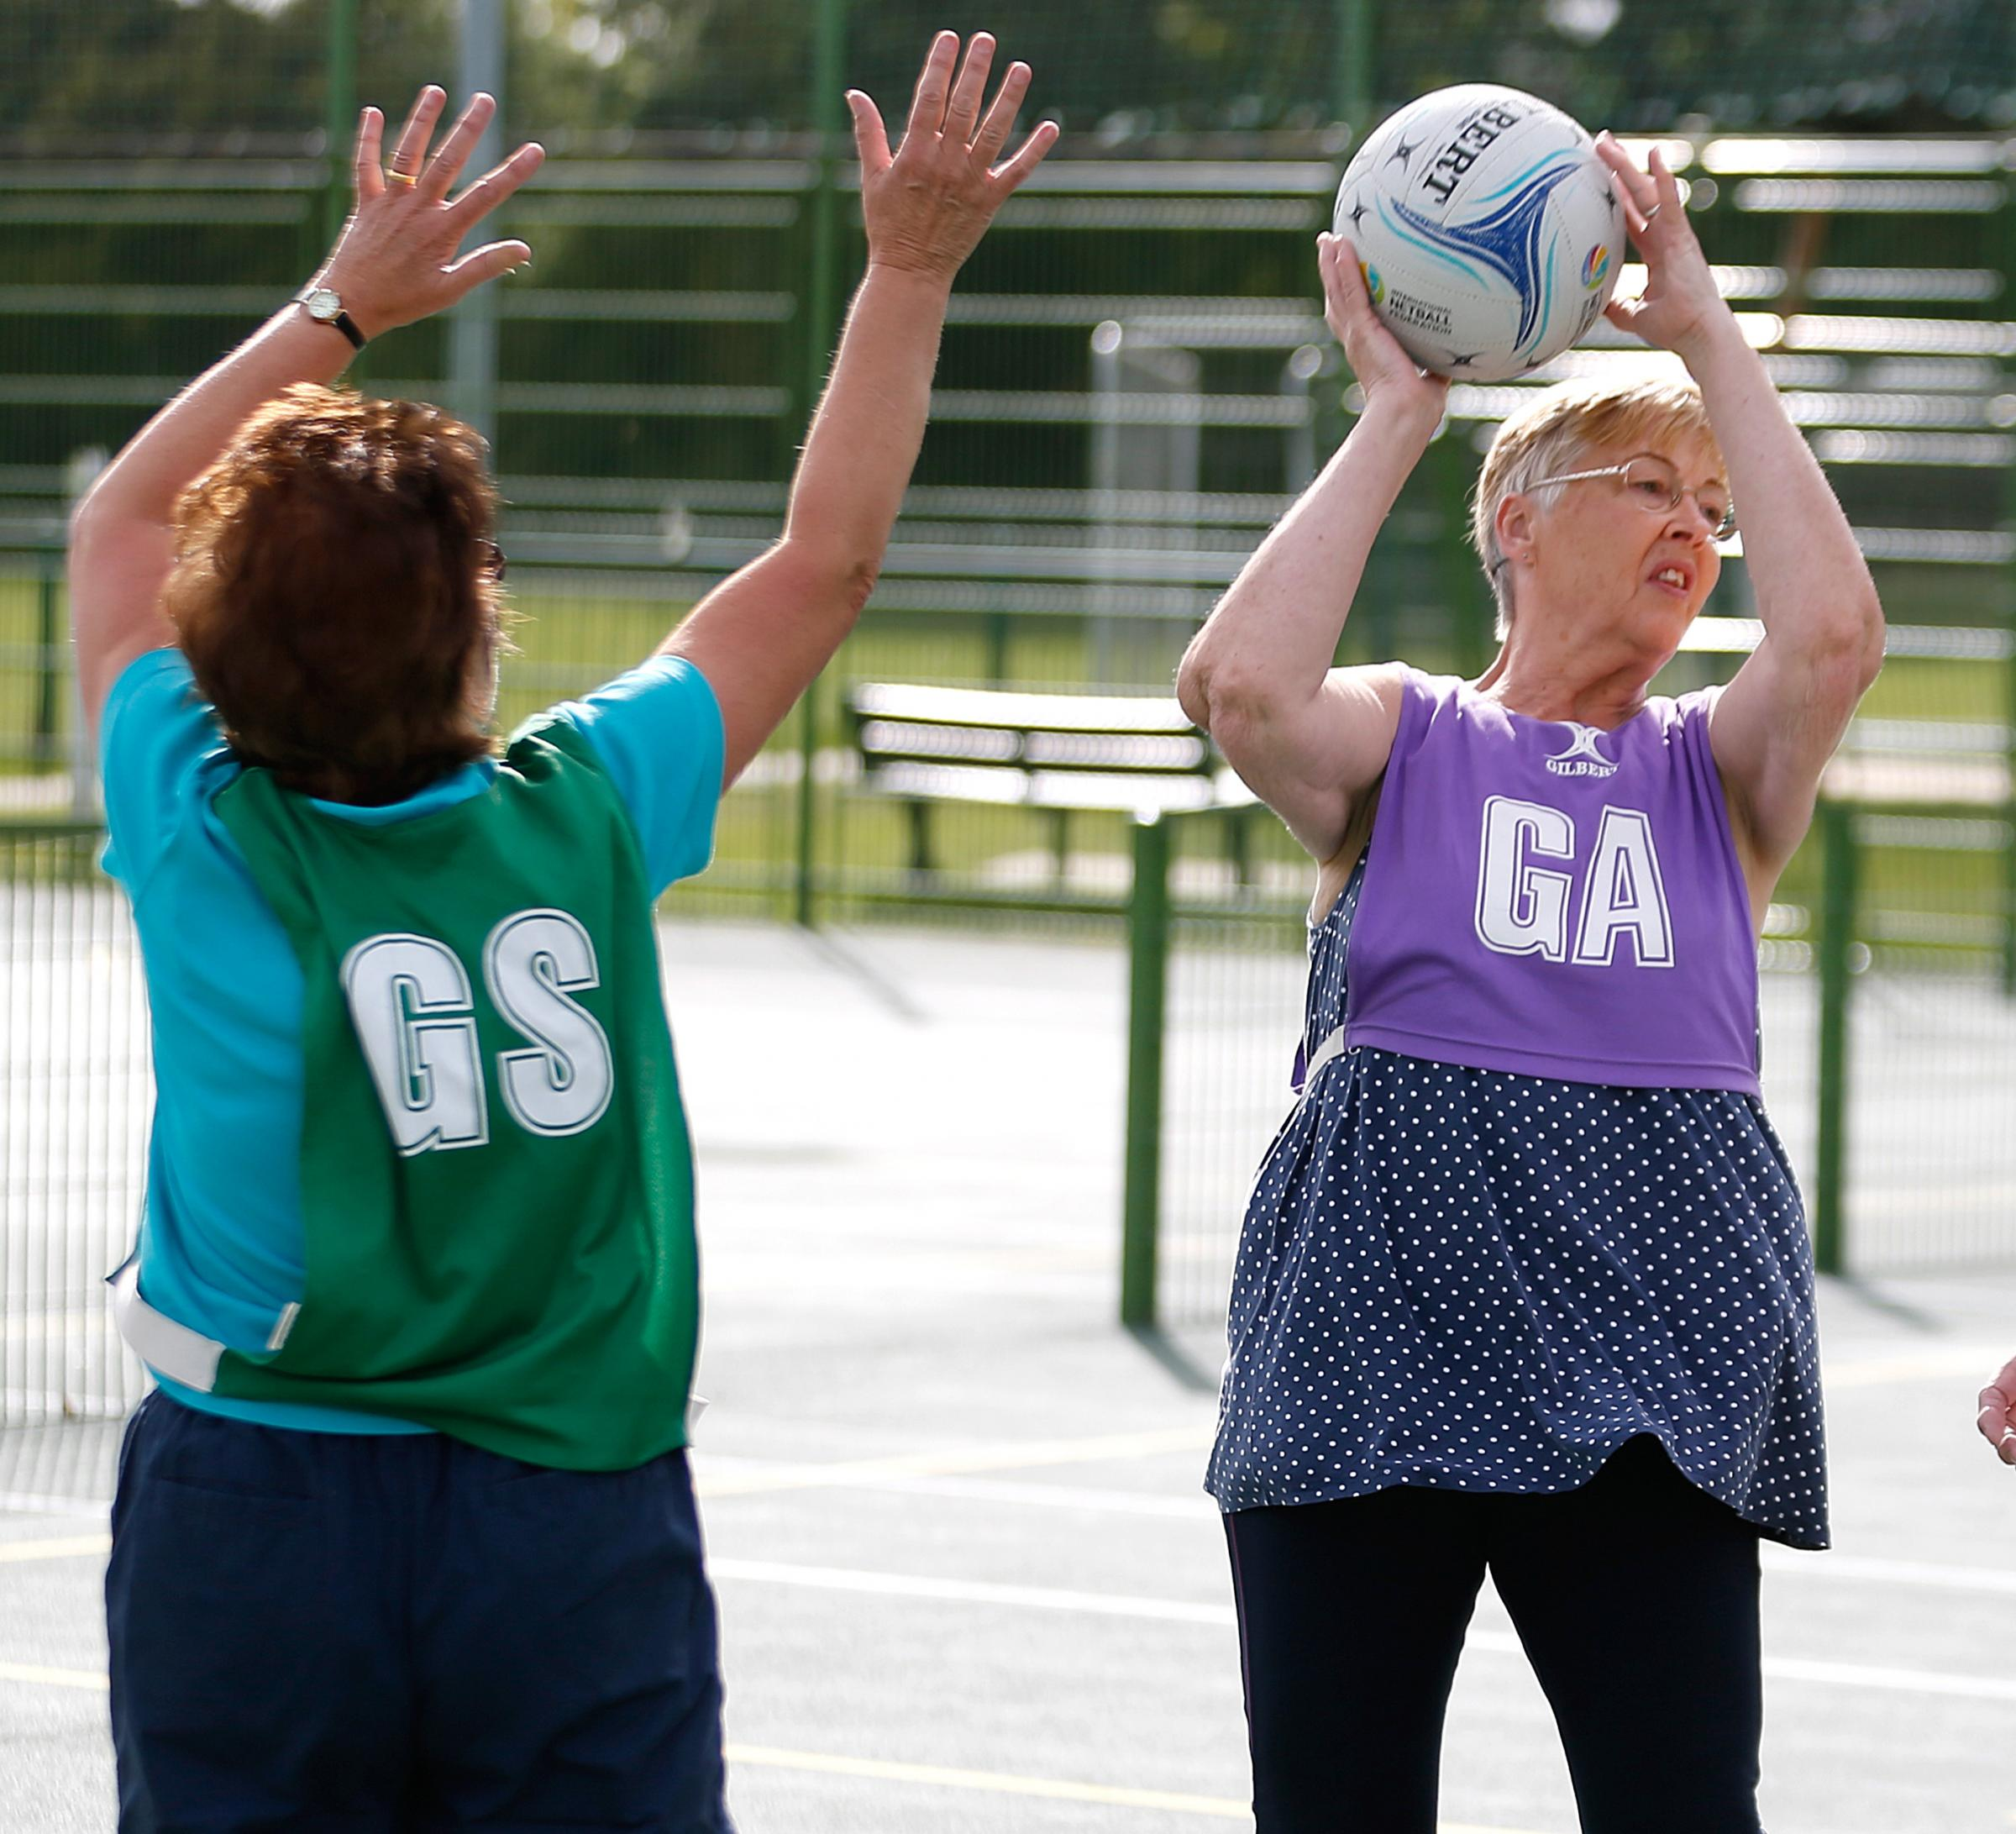 BUDMOUTH SESSIONS: Play underway in a game of walking netball